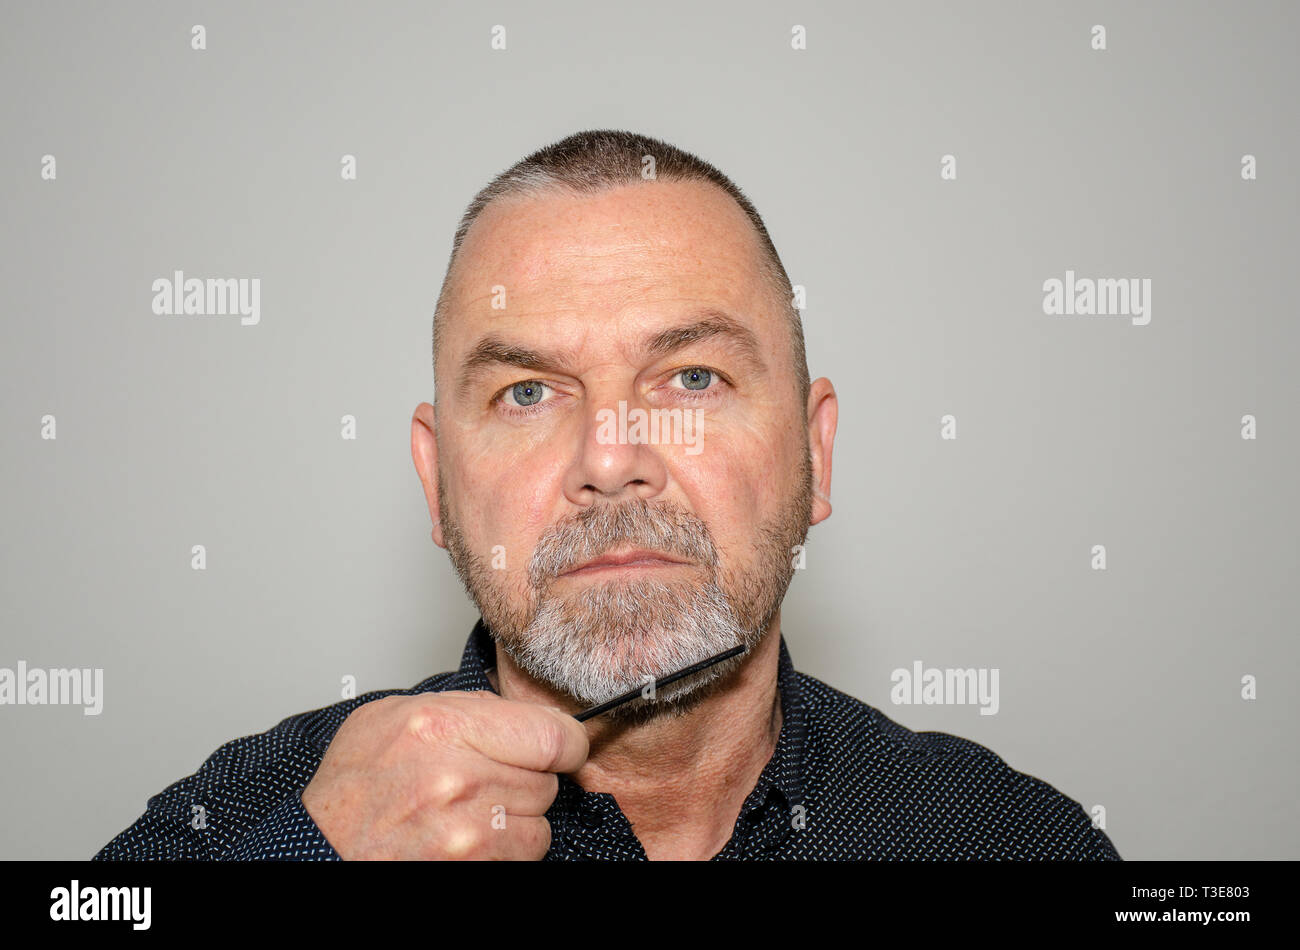 Bearded middle-aged man combing his greying goatee beard while looking at the camera in a concept of personal grooming and hygiene - Stock Image